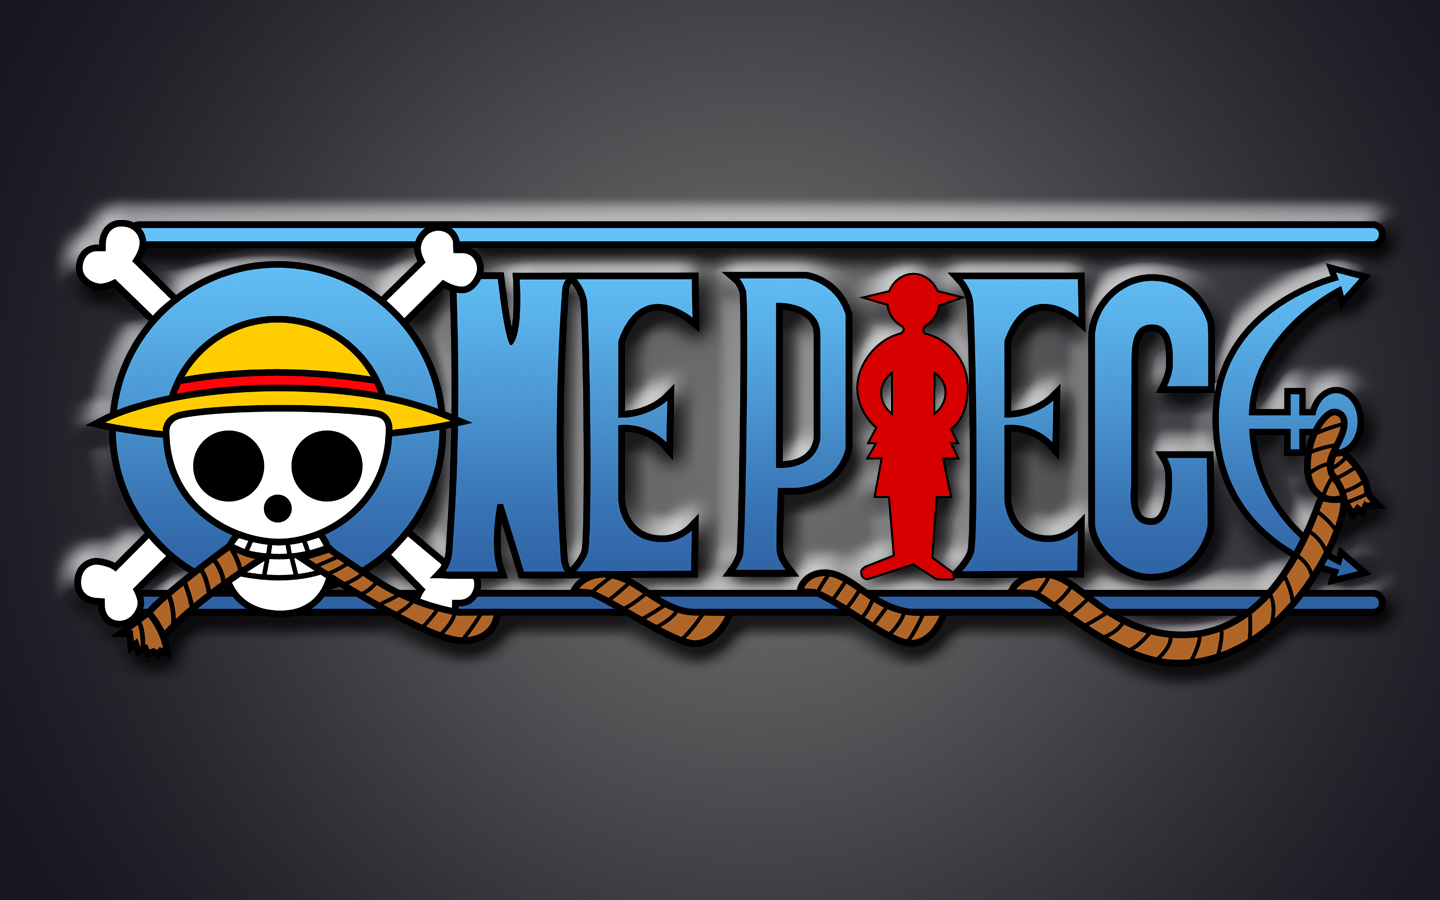 Free Download One Piece Logo Desktop Backgrounds For Hd Wallpaper Wall 1440x900 For Your Desktop Mobile Tablet Explore 76 One Piece Wallpaper Hd One Piece Wallpaper 1920x1080 Cool One